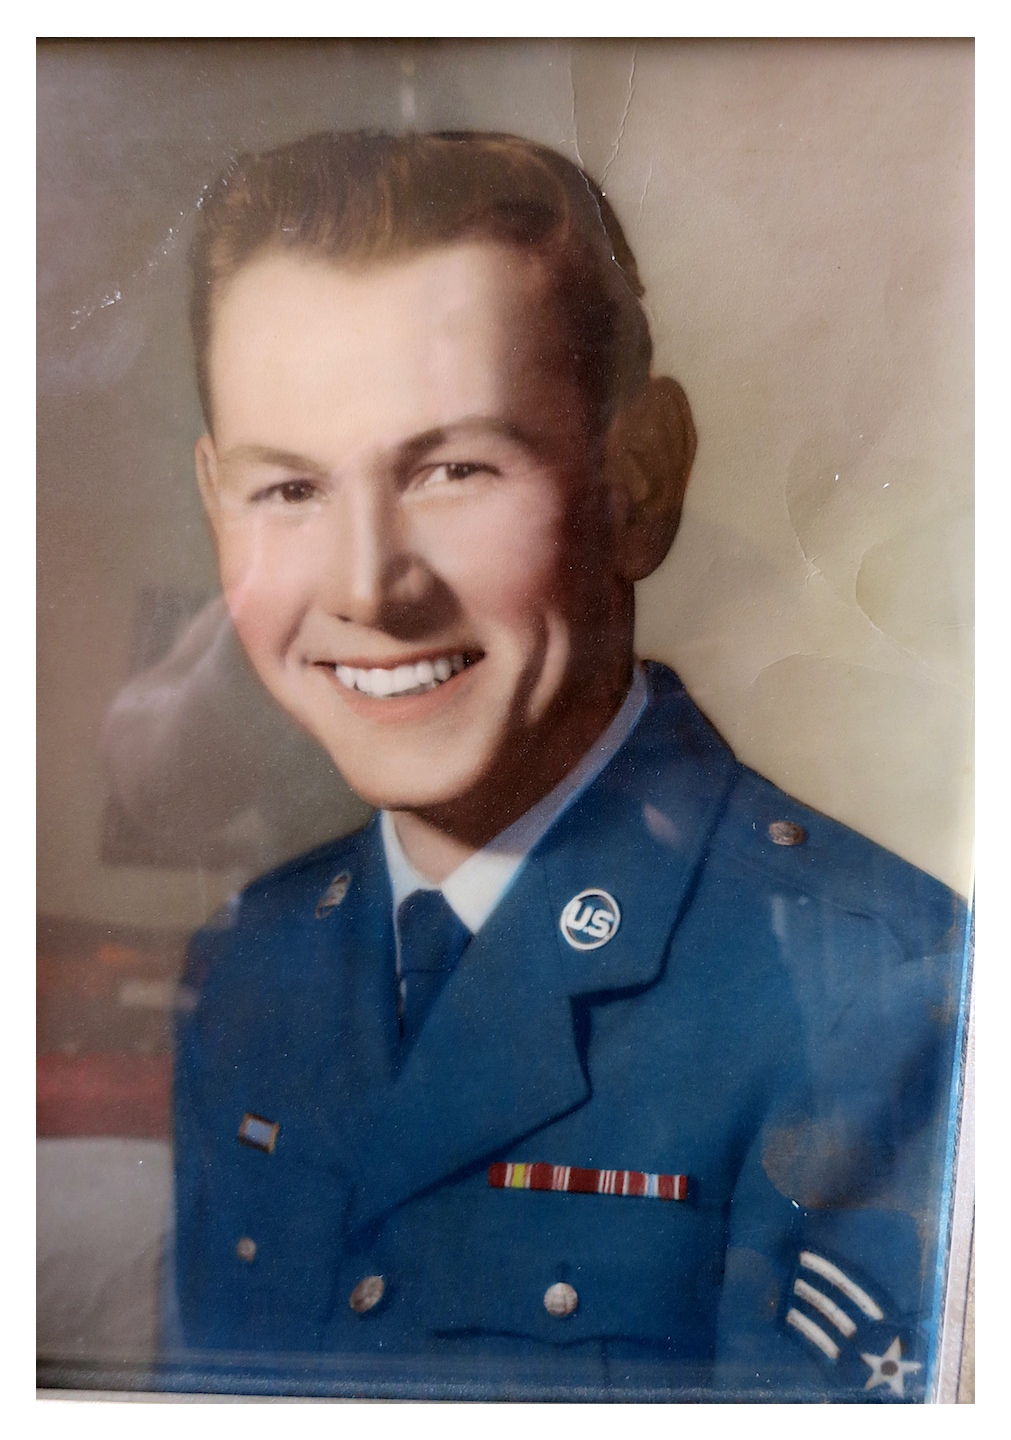 Dad in Air Force Uniform